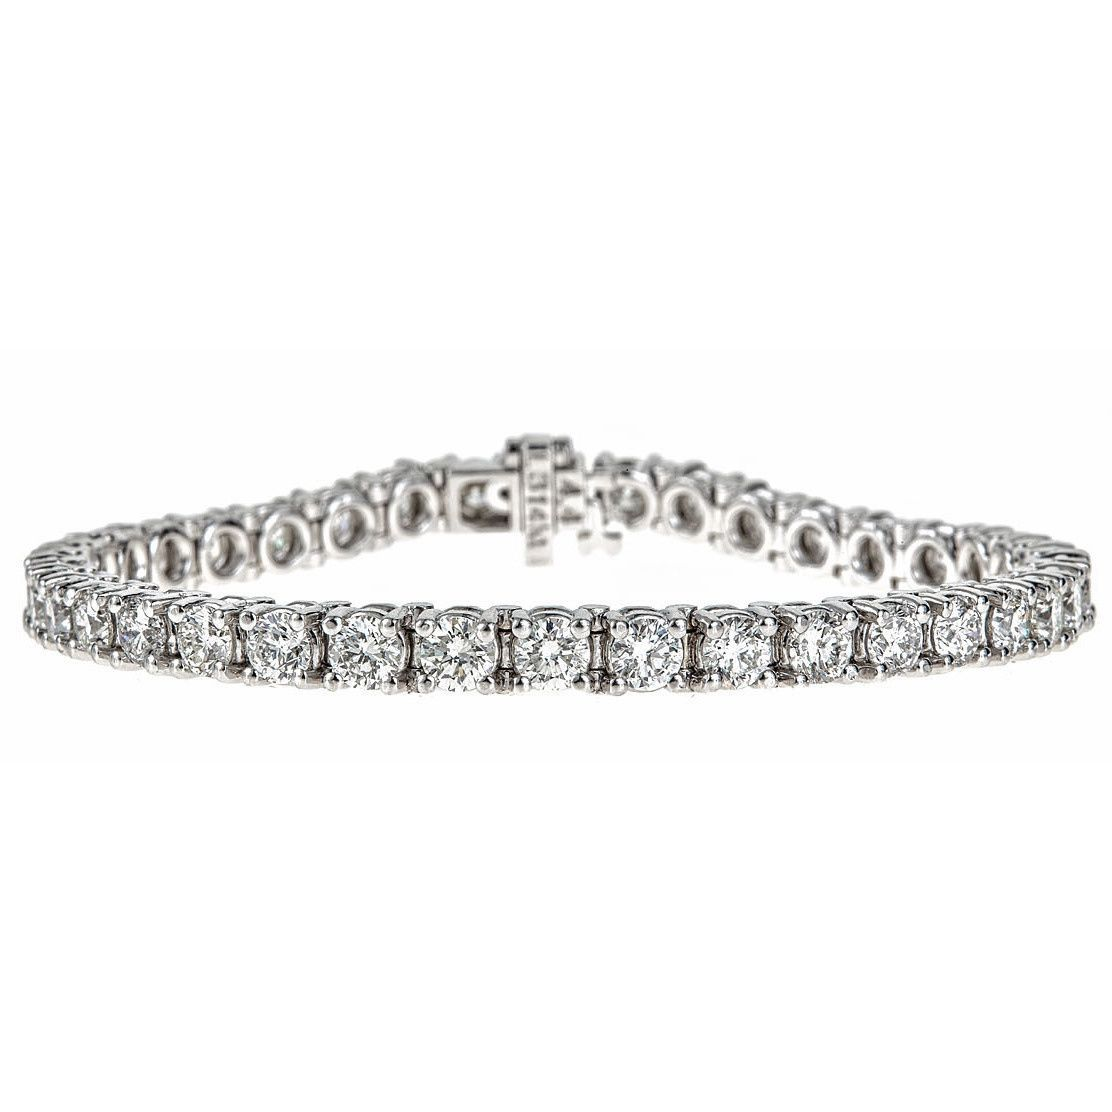 K whie gold ct tdw diamond tennis bracelet hi sisi